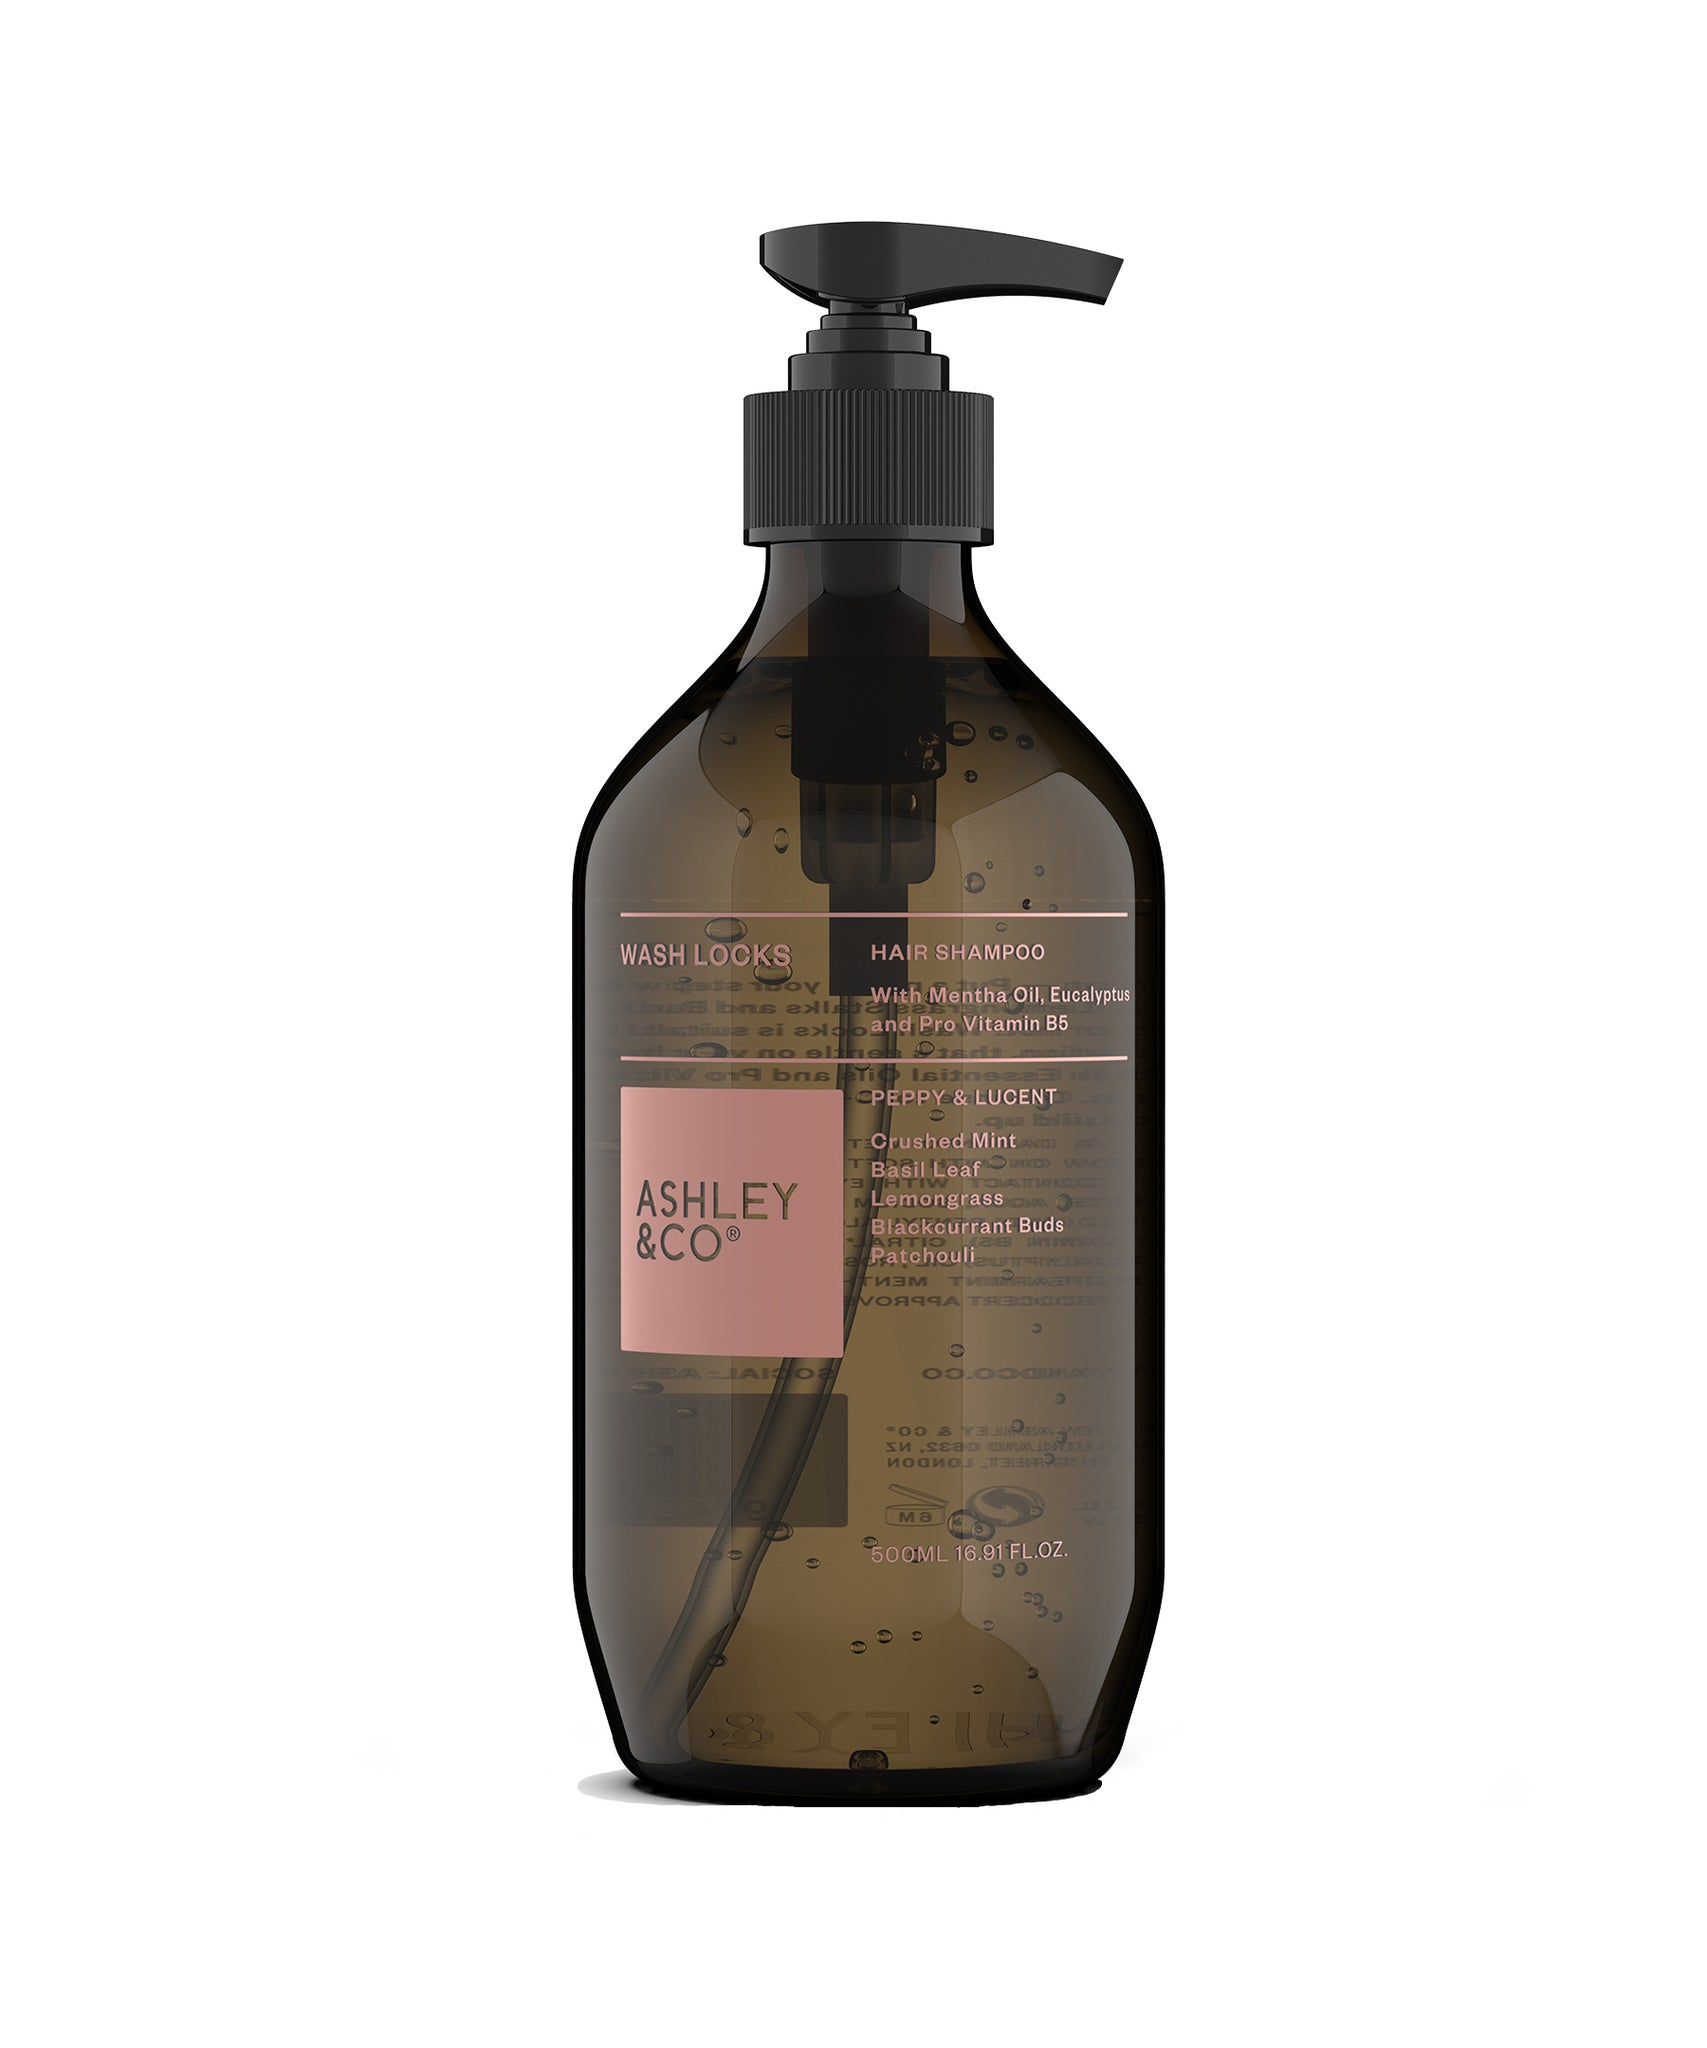 Wash Locks Shampoo by Ashley & Co.